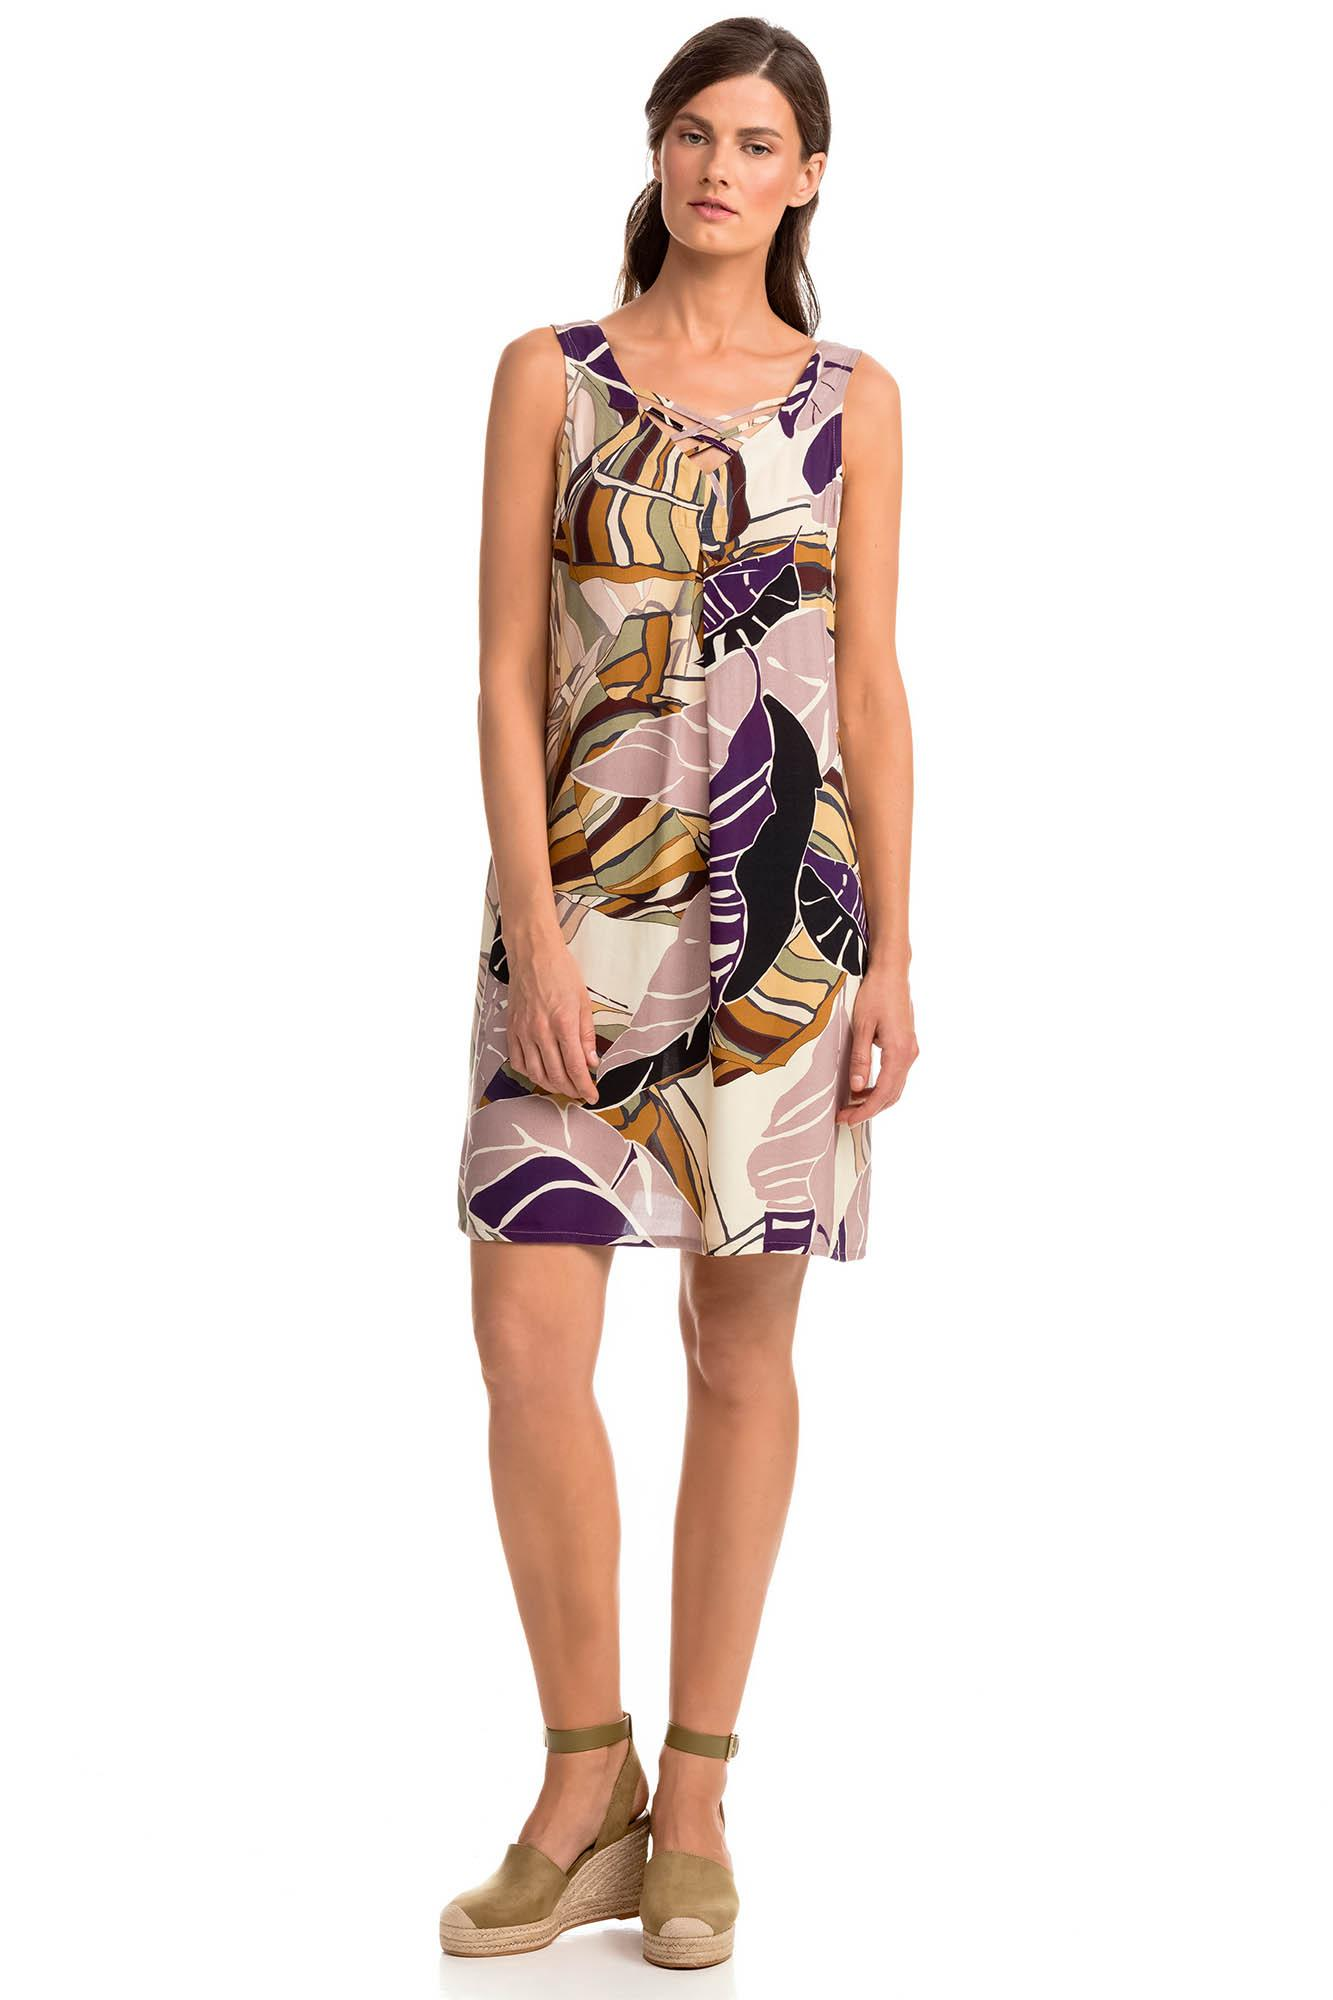 Sleeveless Print Dress Sleeveless print dress with lightweight, airy feel from non stretch fabric, perfect choice for a walk in town and at the beach. Composition: 100% Viscose.